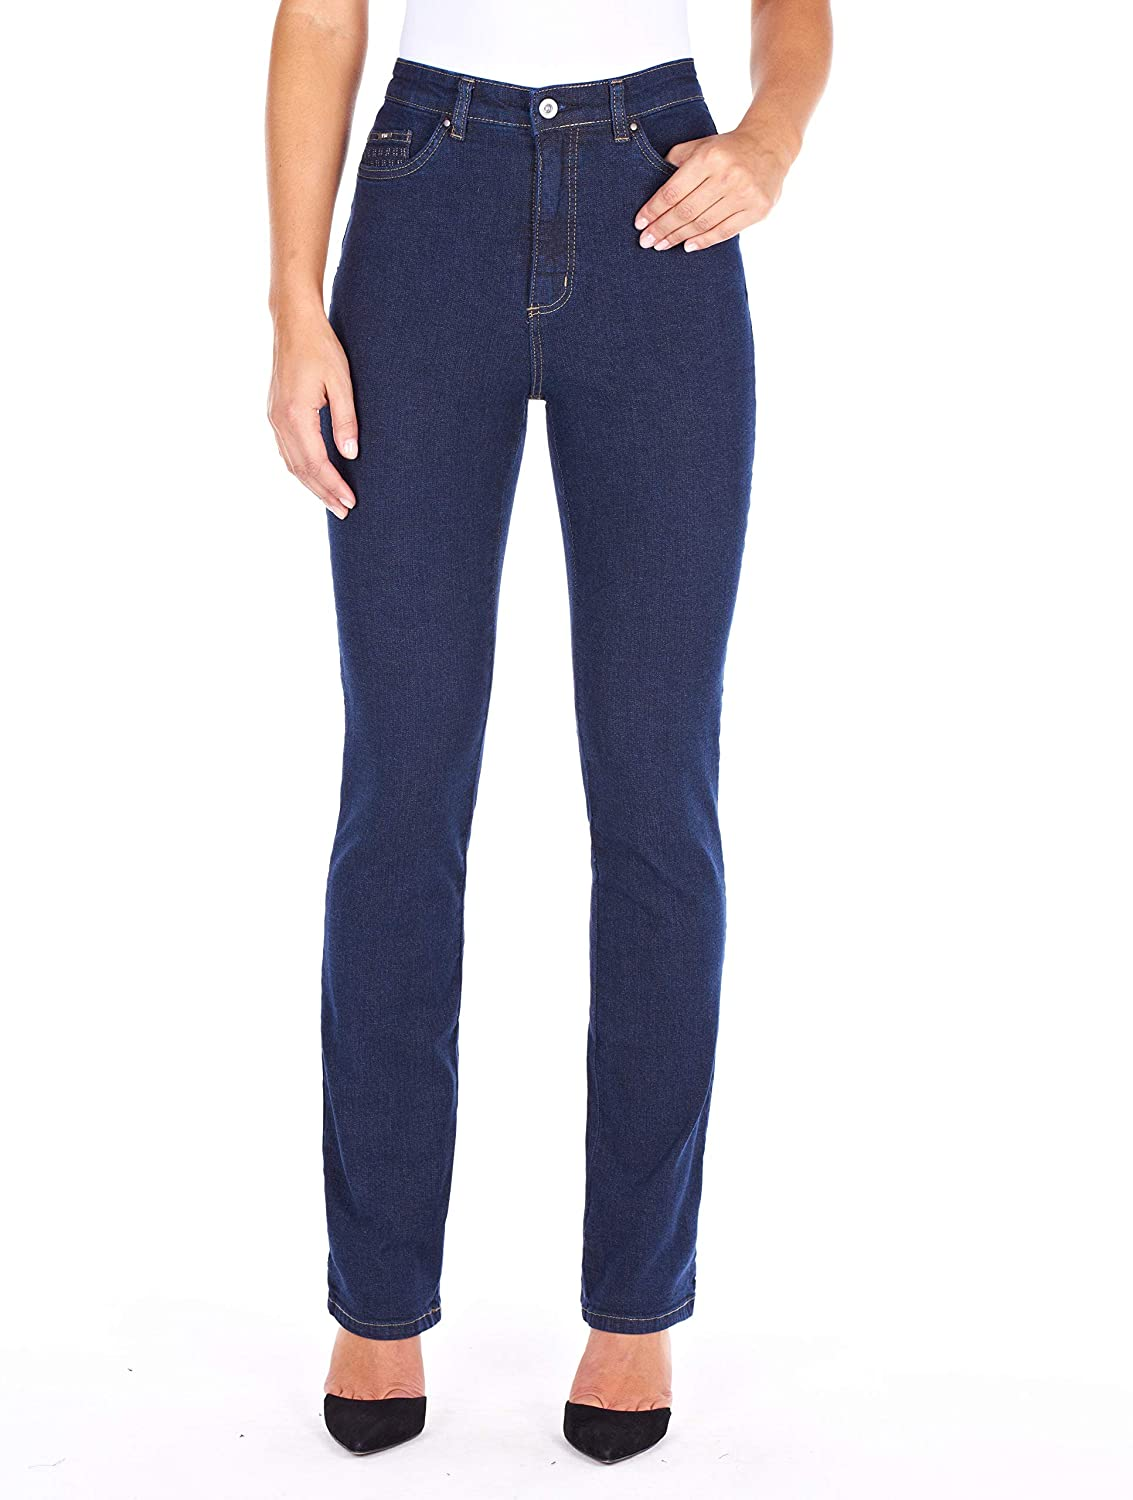 a790d283be3 FDJ French Dressing Jeans Suzanne Straight Leg PETITE Jeans Style  8459002   Amazon.ca  Clothing   Accessories